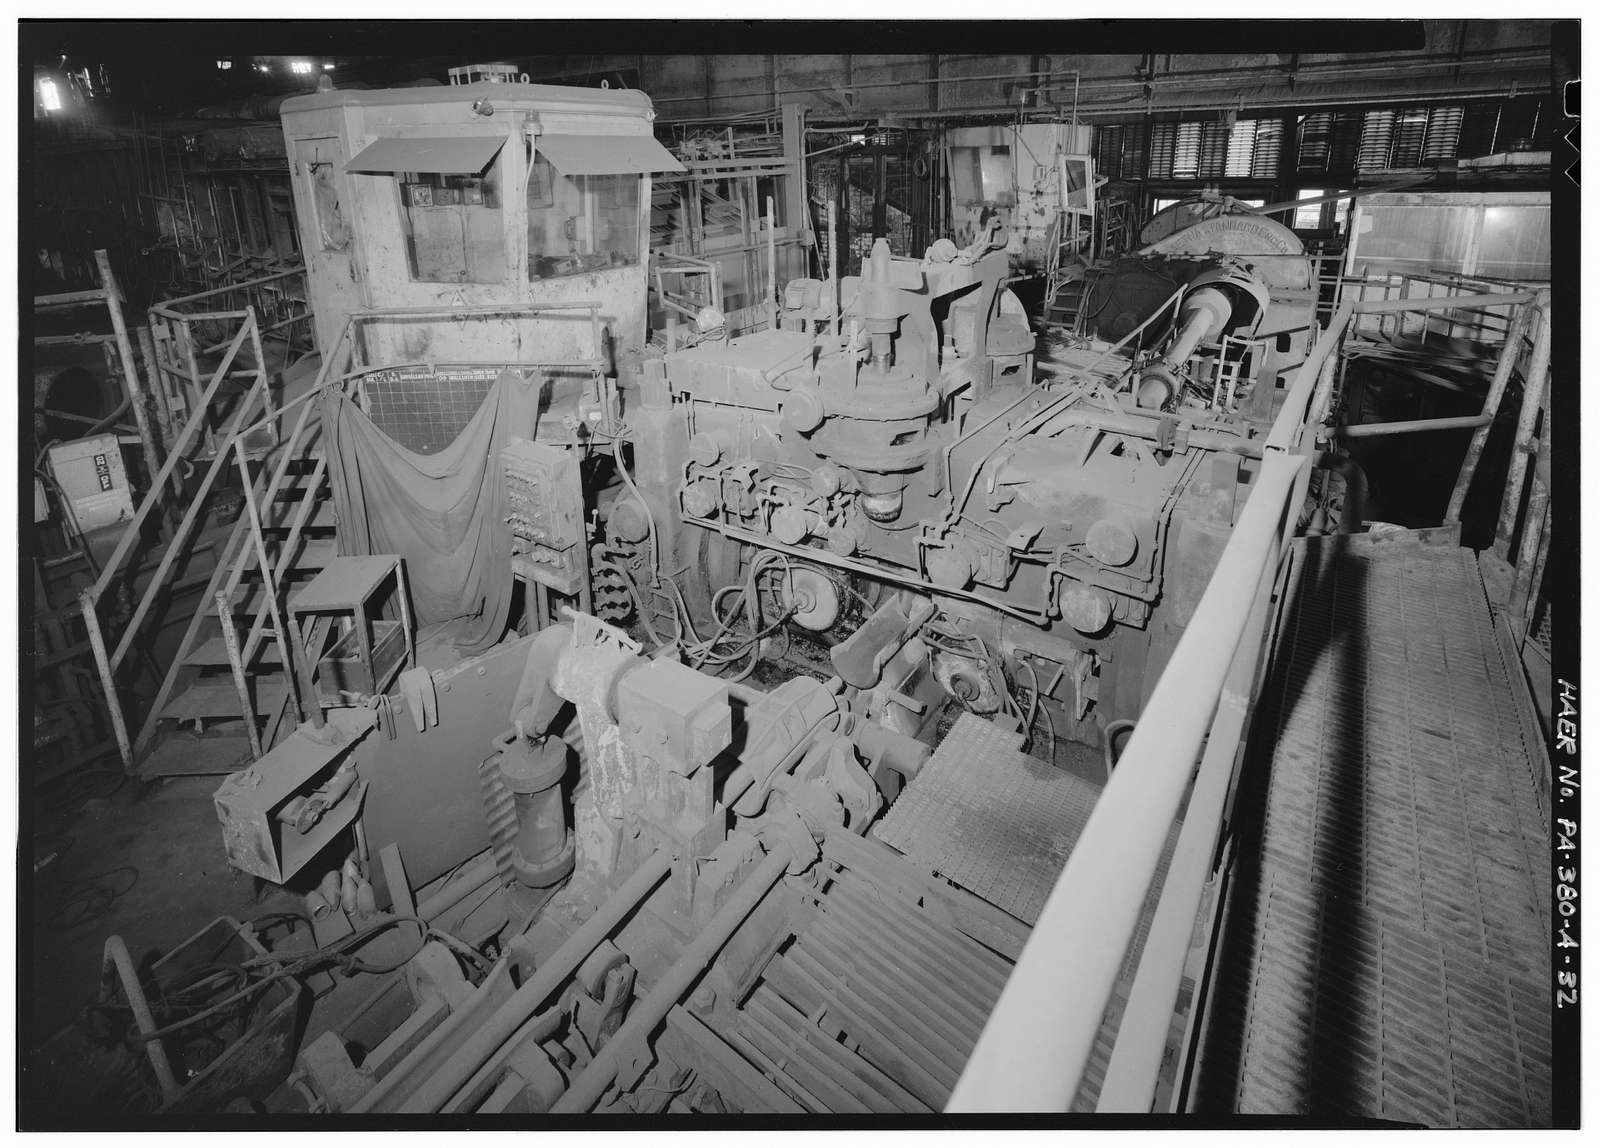 U.S. Steel National Tube Works, Main Pipe Mill Building, Along Monongahela River, McKeesport, Allegheny County, PA